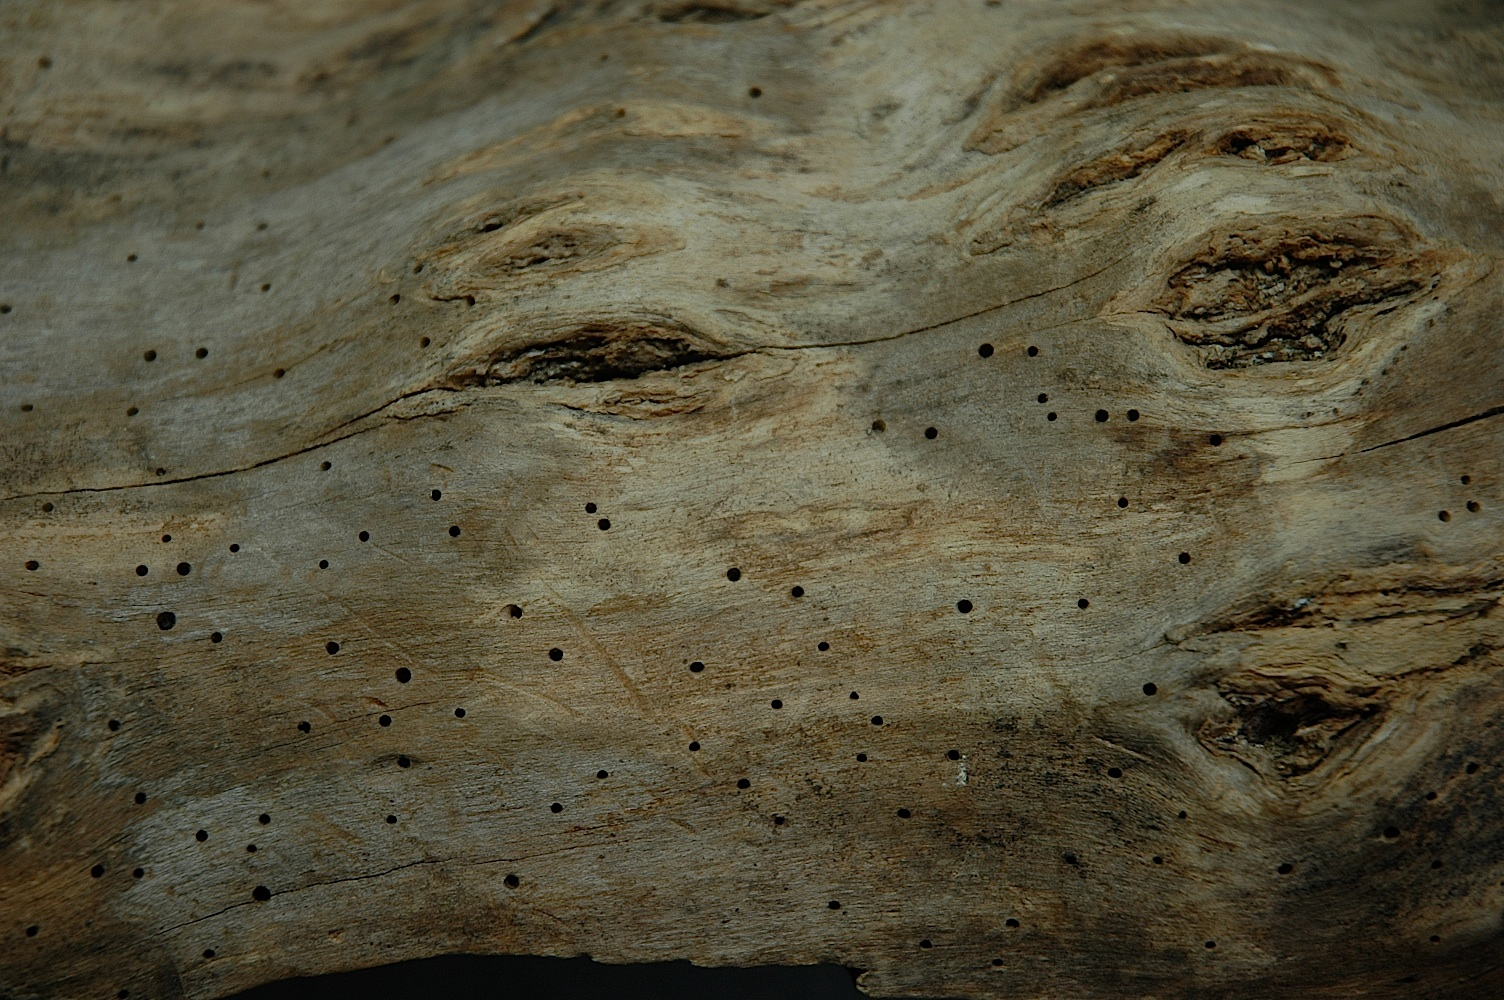 Very Impressive portraiture of Termites moreover Termite Tunnels Inside House further Engineered Wood  with #3C3423 color and 1504x1000 pixels